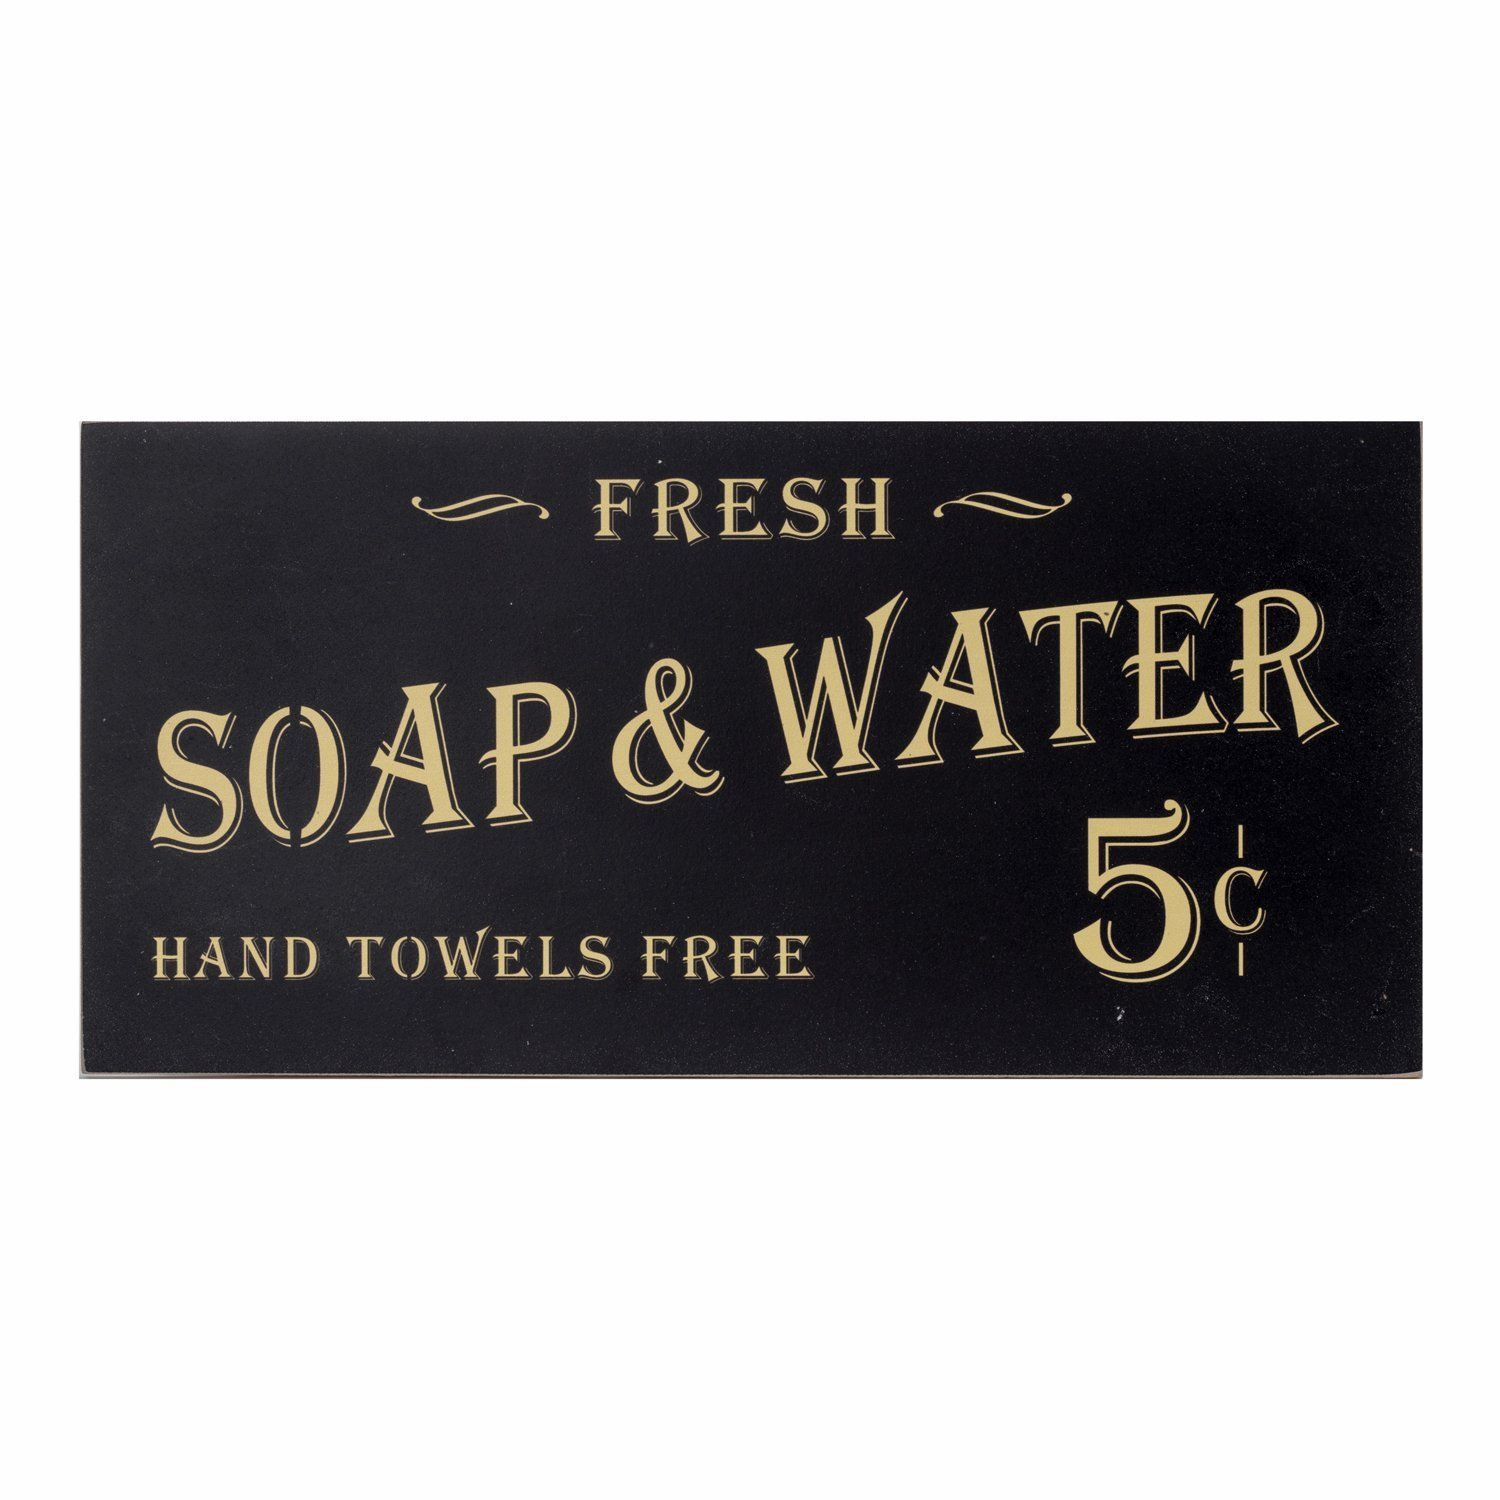 Vintage Bathroom Signs Decor Soap And Water Sign Farmhouse